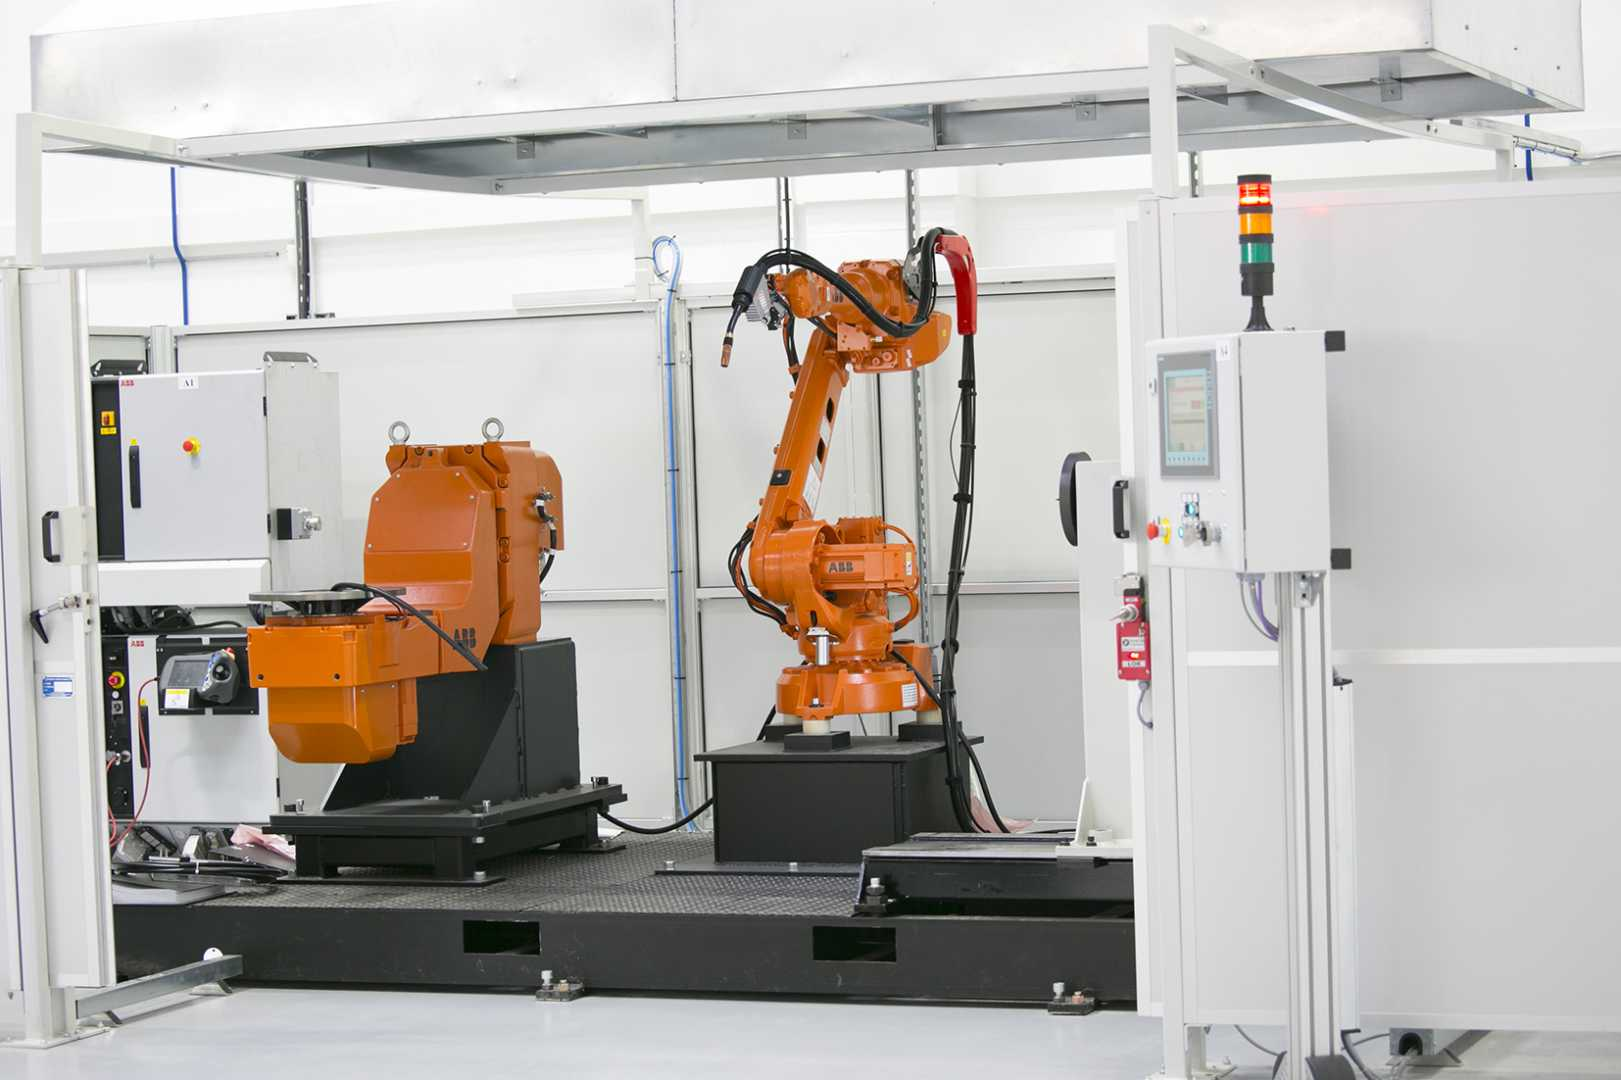 ABB Robotics research supports the contention that automation and robotics increase productivity and competitiveness.